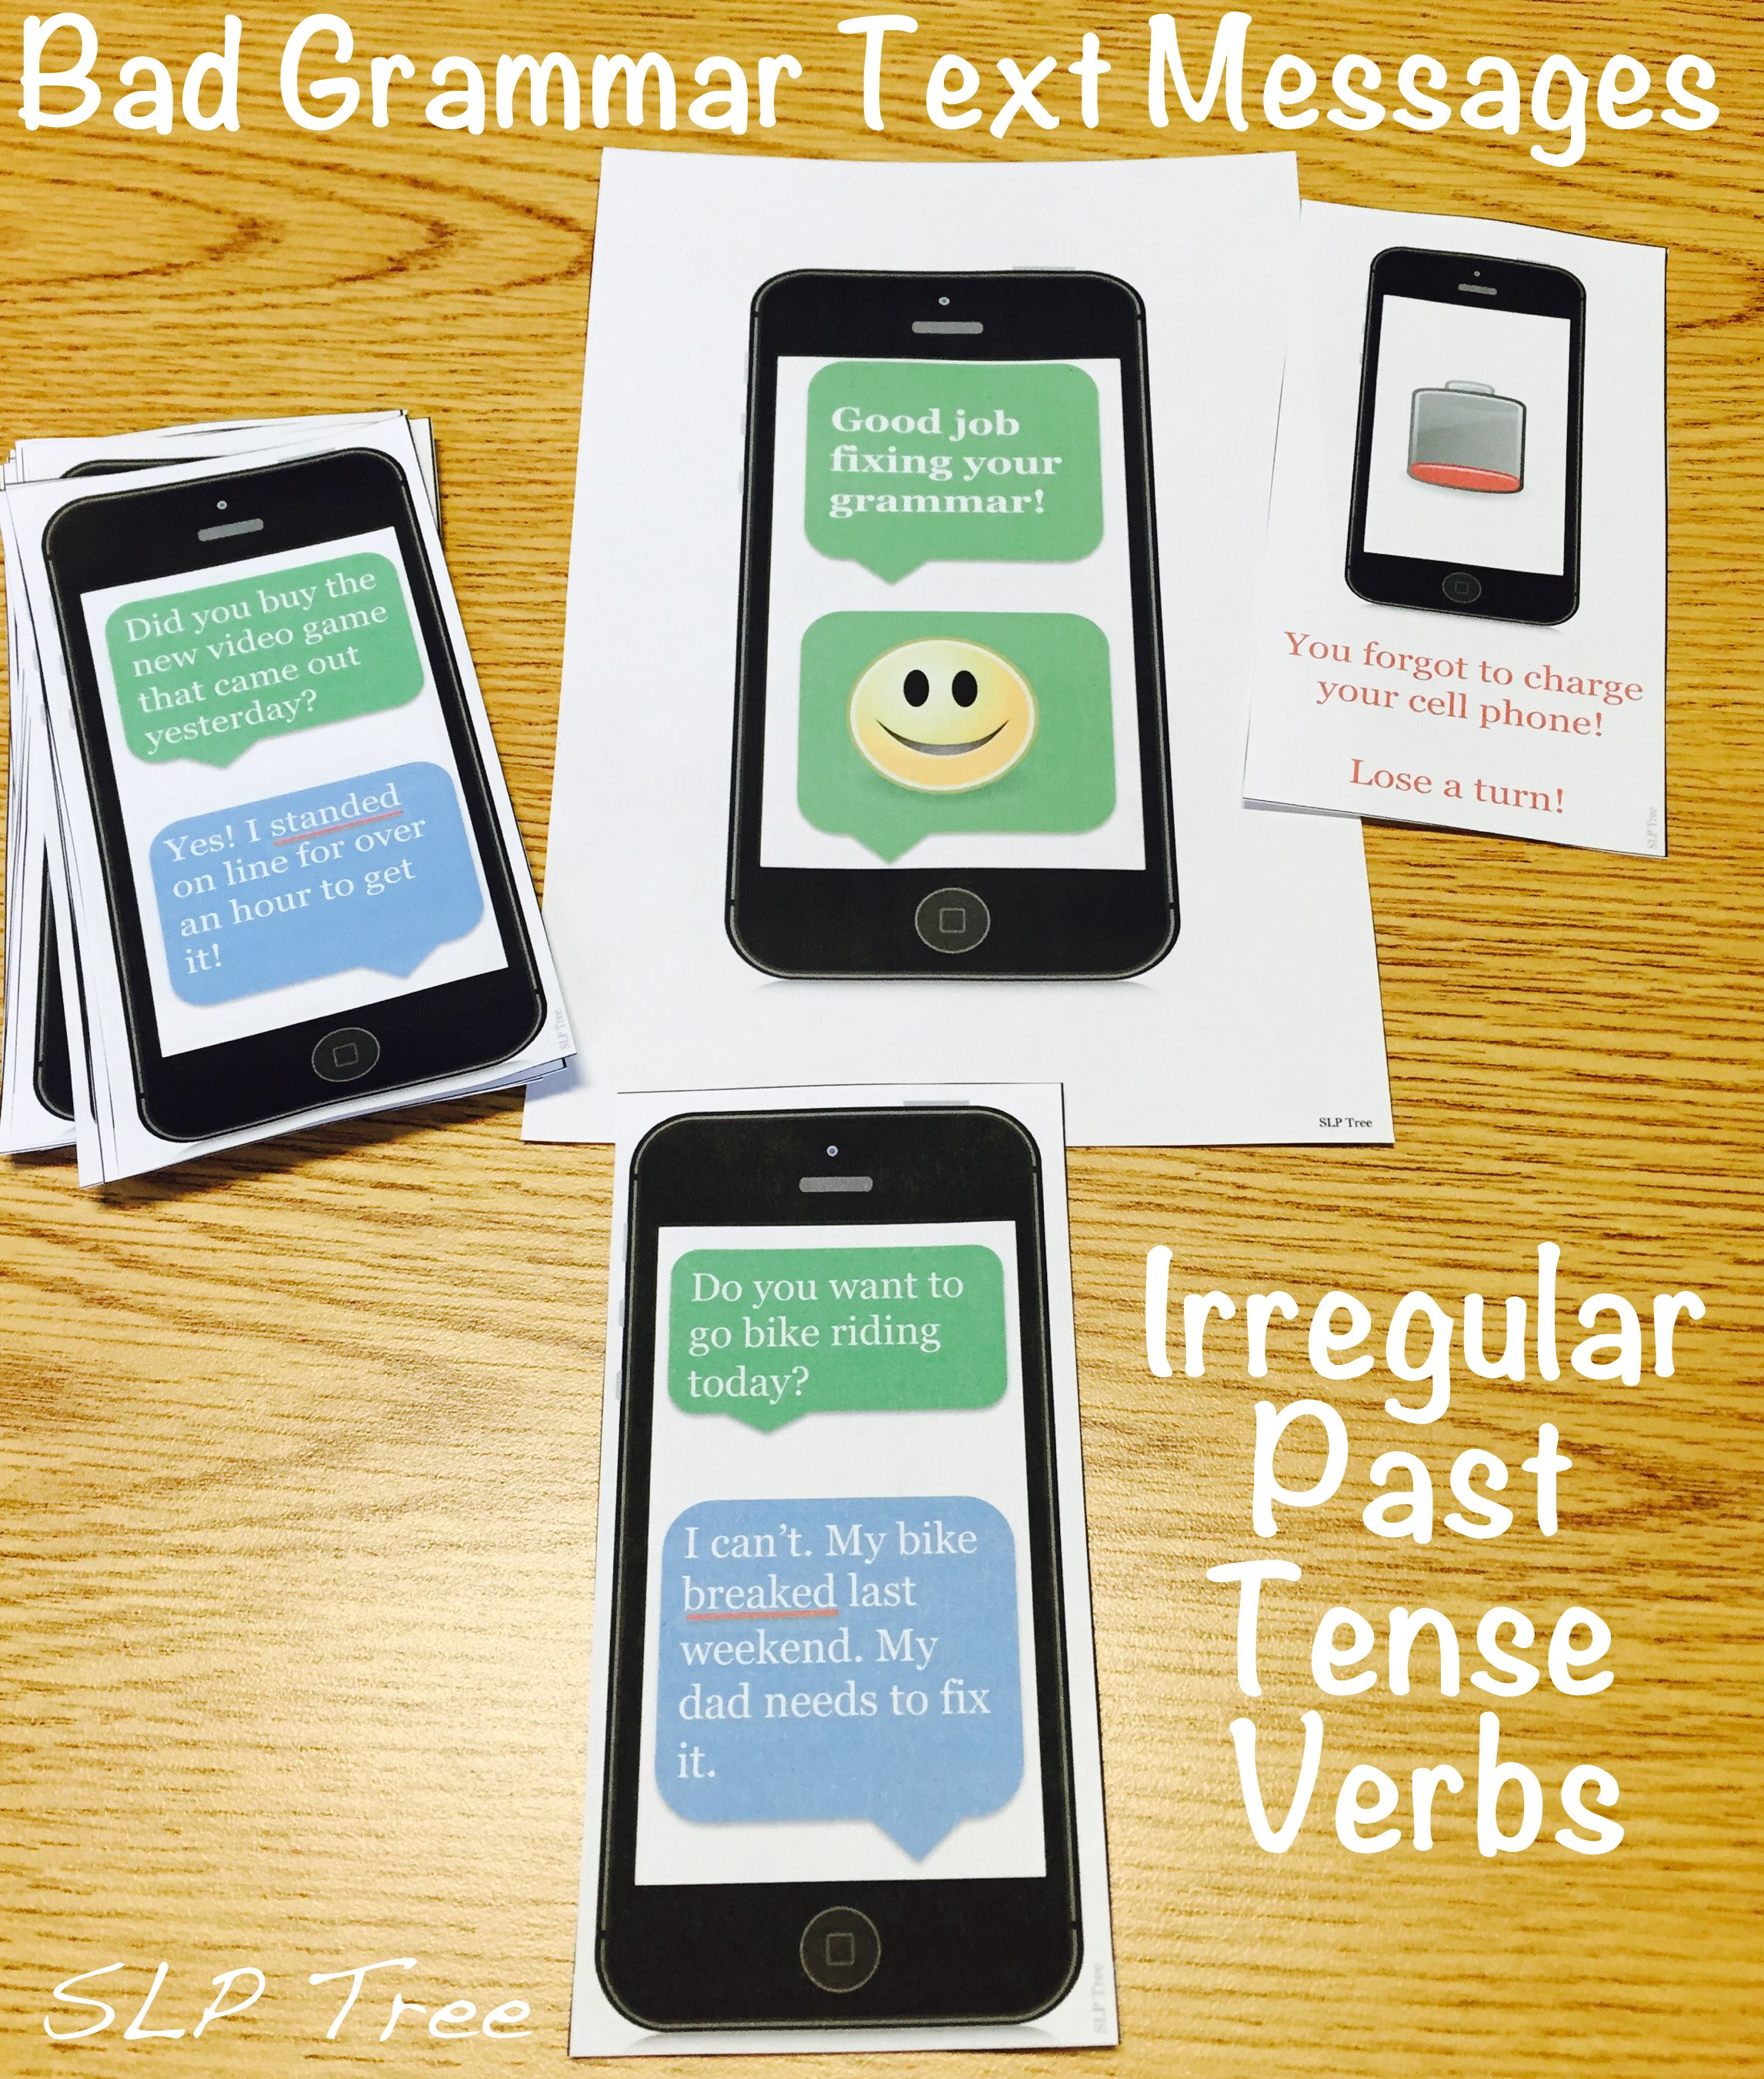 Irregular Past Tense Verbs Bad Grammar Text Messages